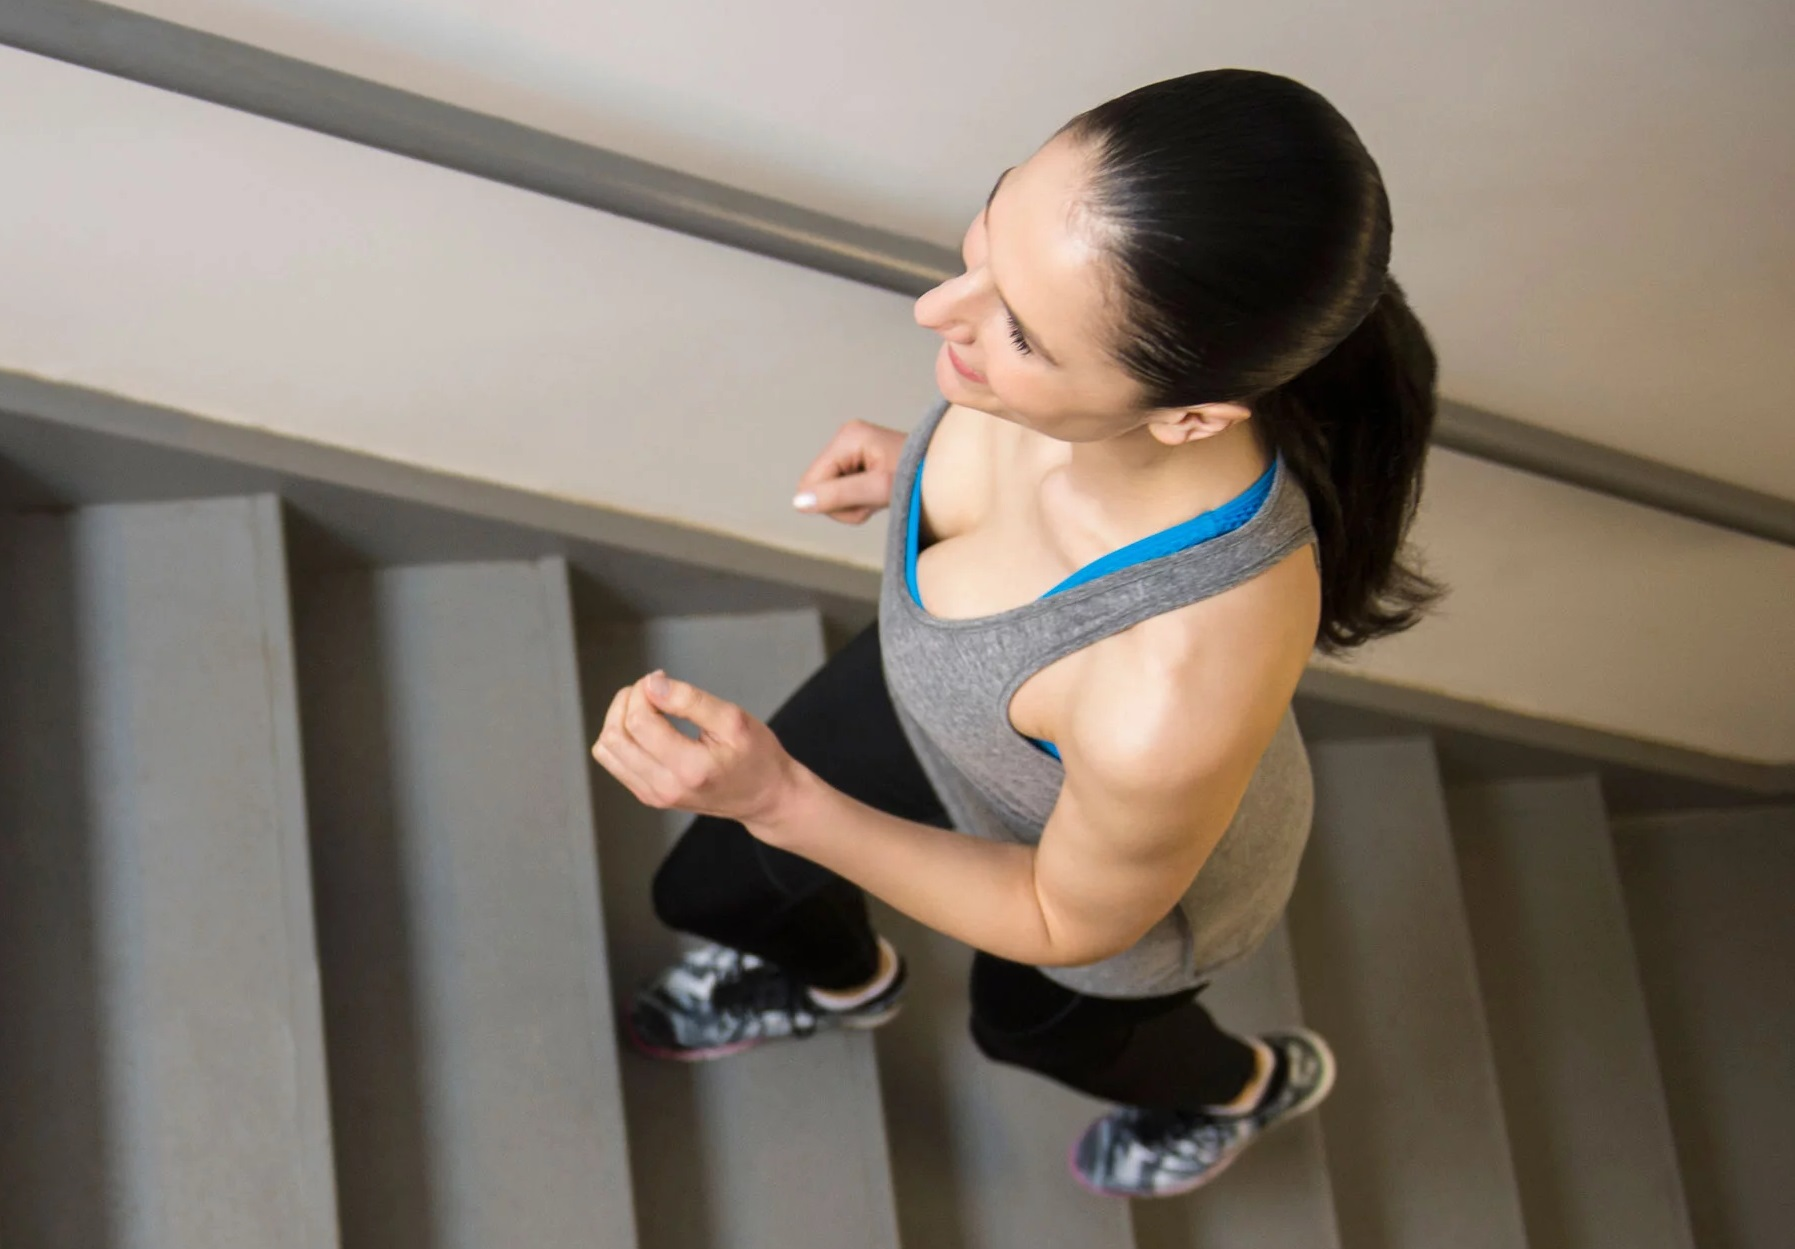 Strength training at home using stairs